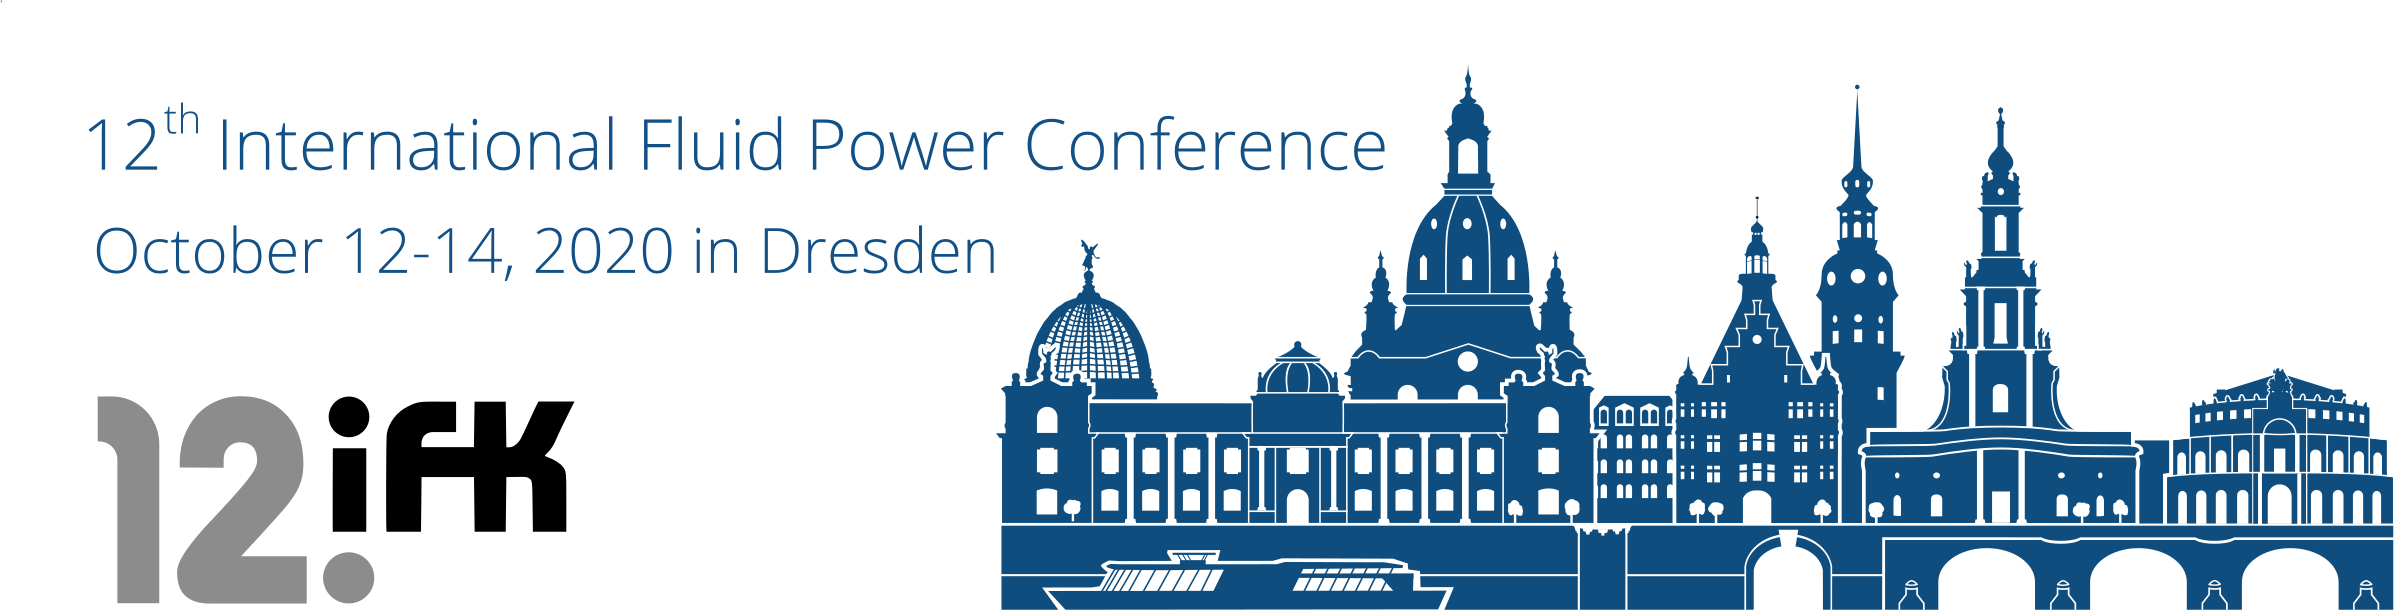 12th International Fluid Power Conference